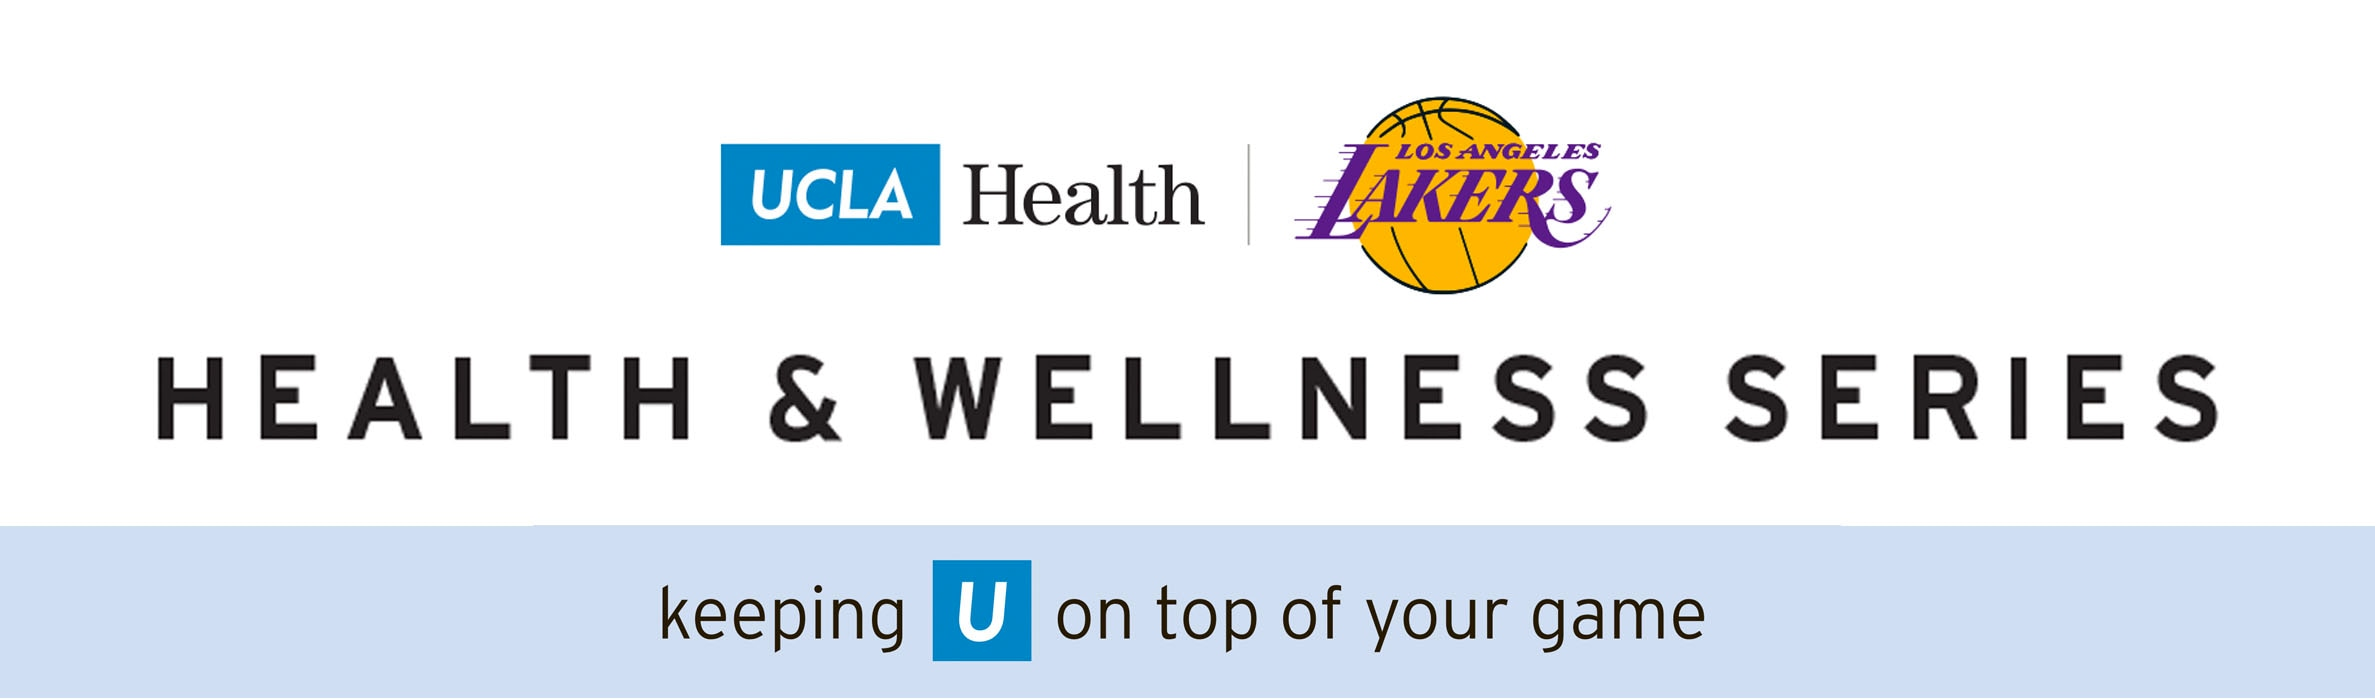 Lakers and UCLA Health in the Community | Los Angeles Lakers